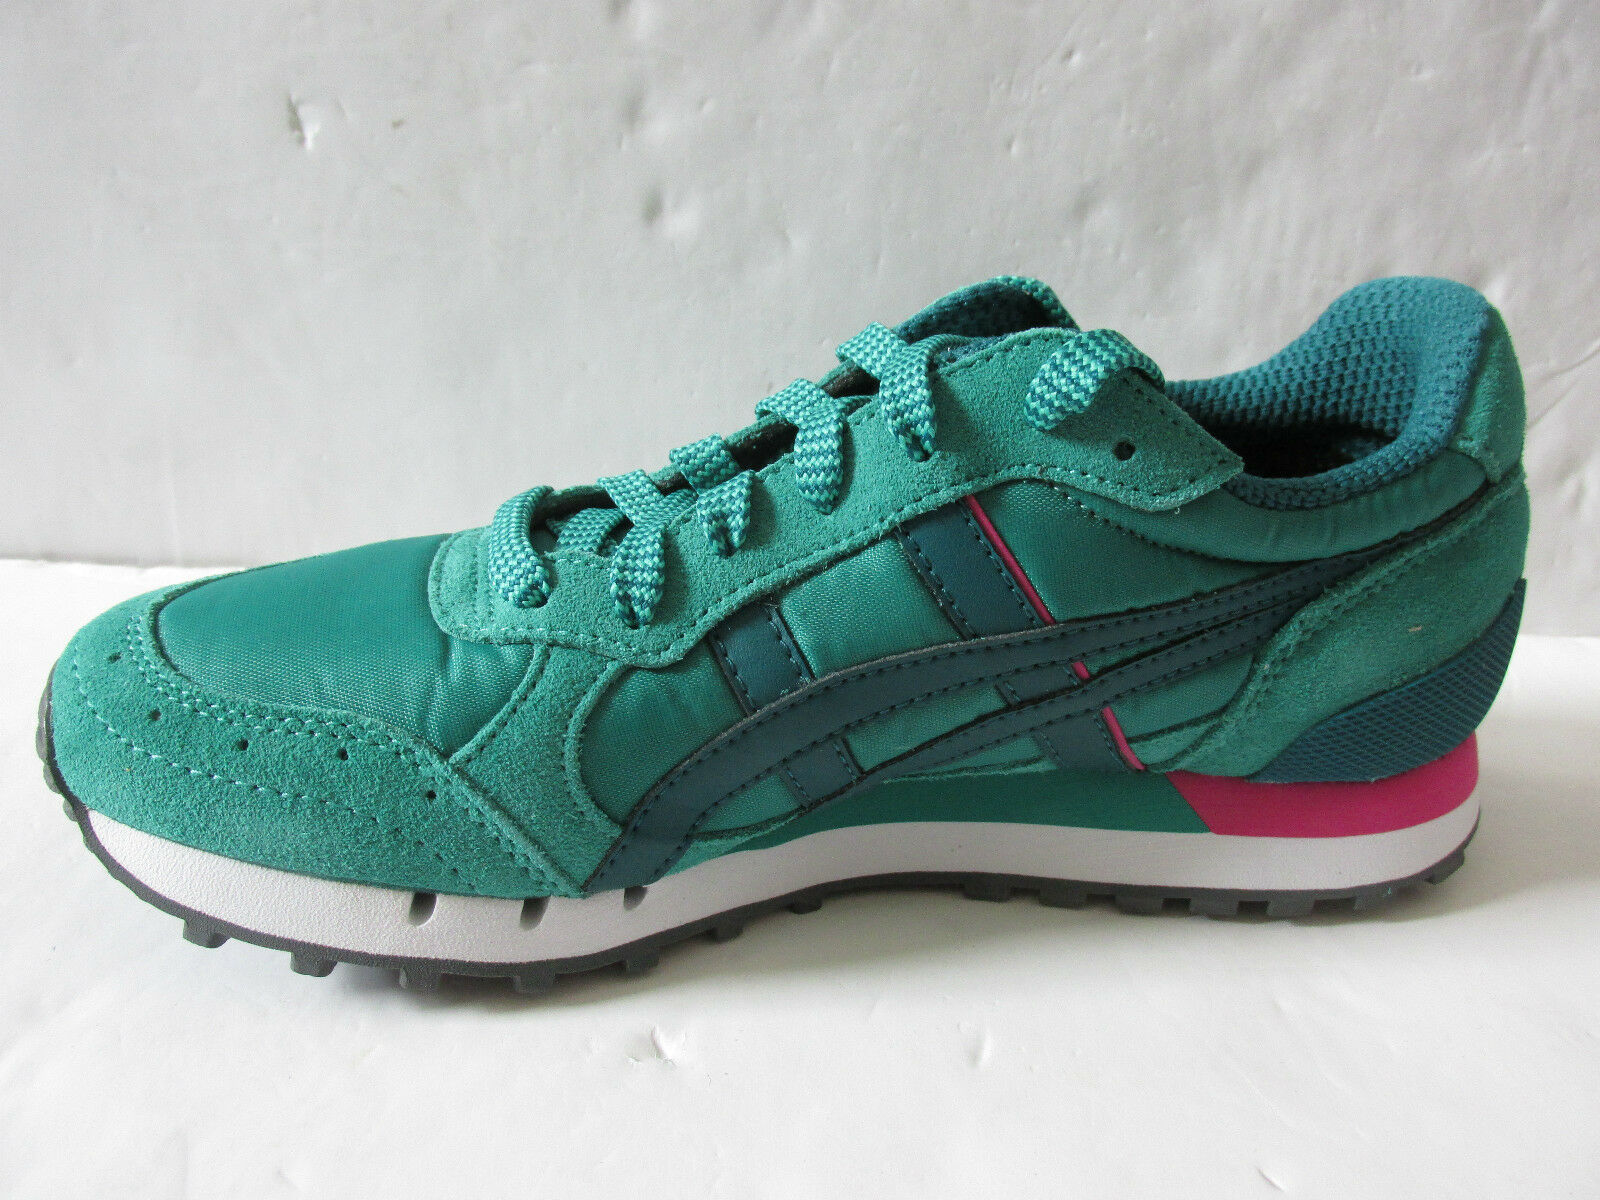 Onitsuka tiger trainers Damenss colorado eighty five trainers tiger D4S6N 8880 Turnschuhe asics 27ef41